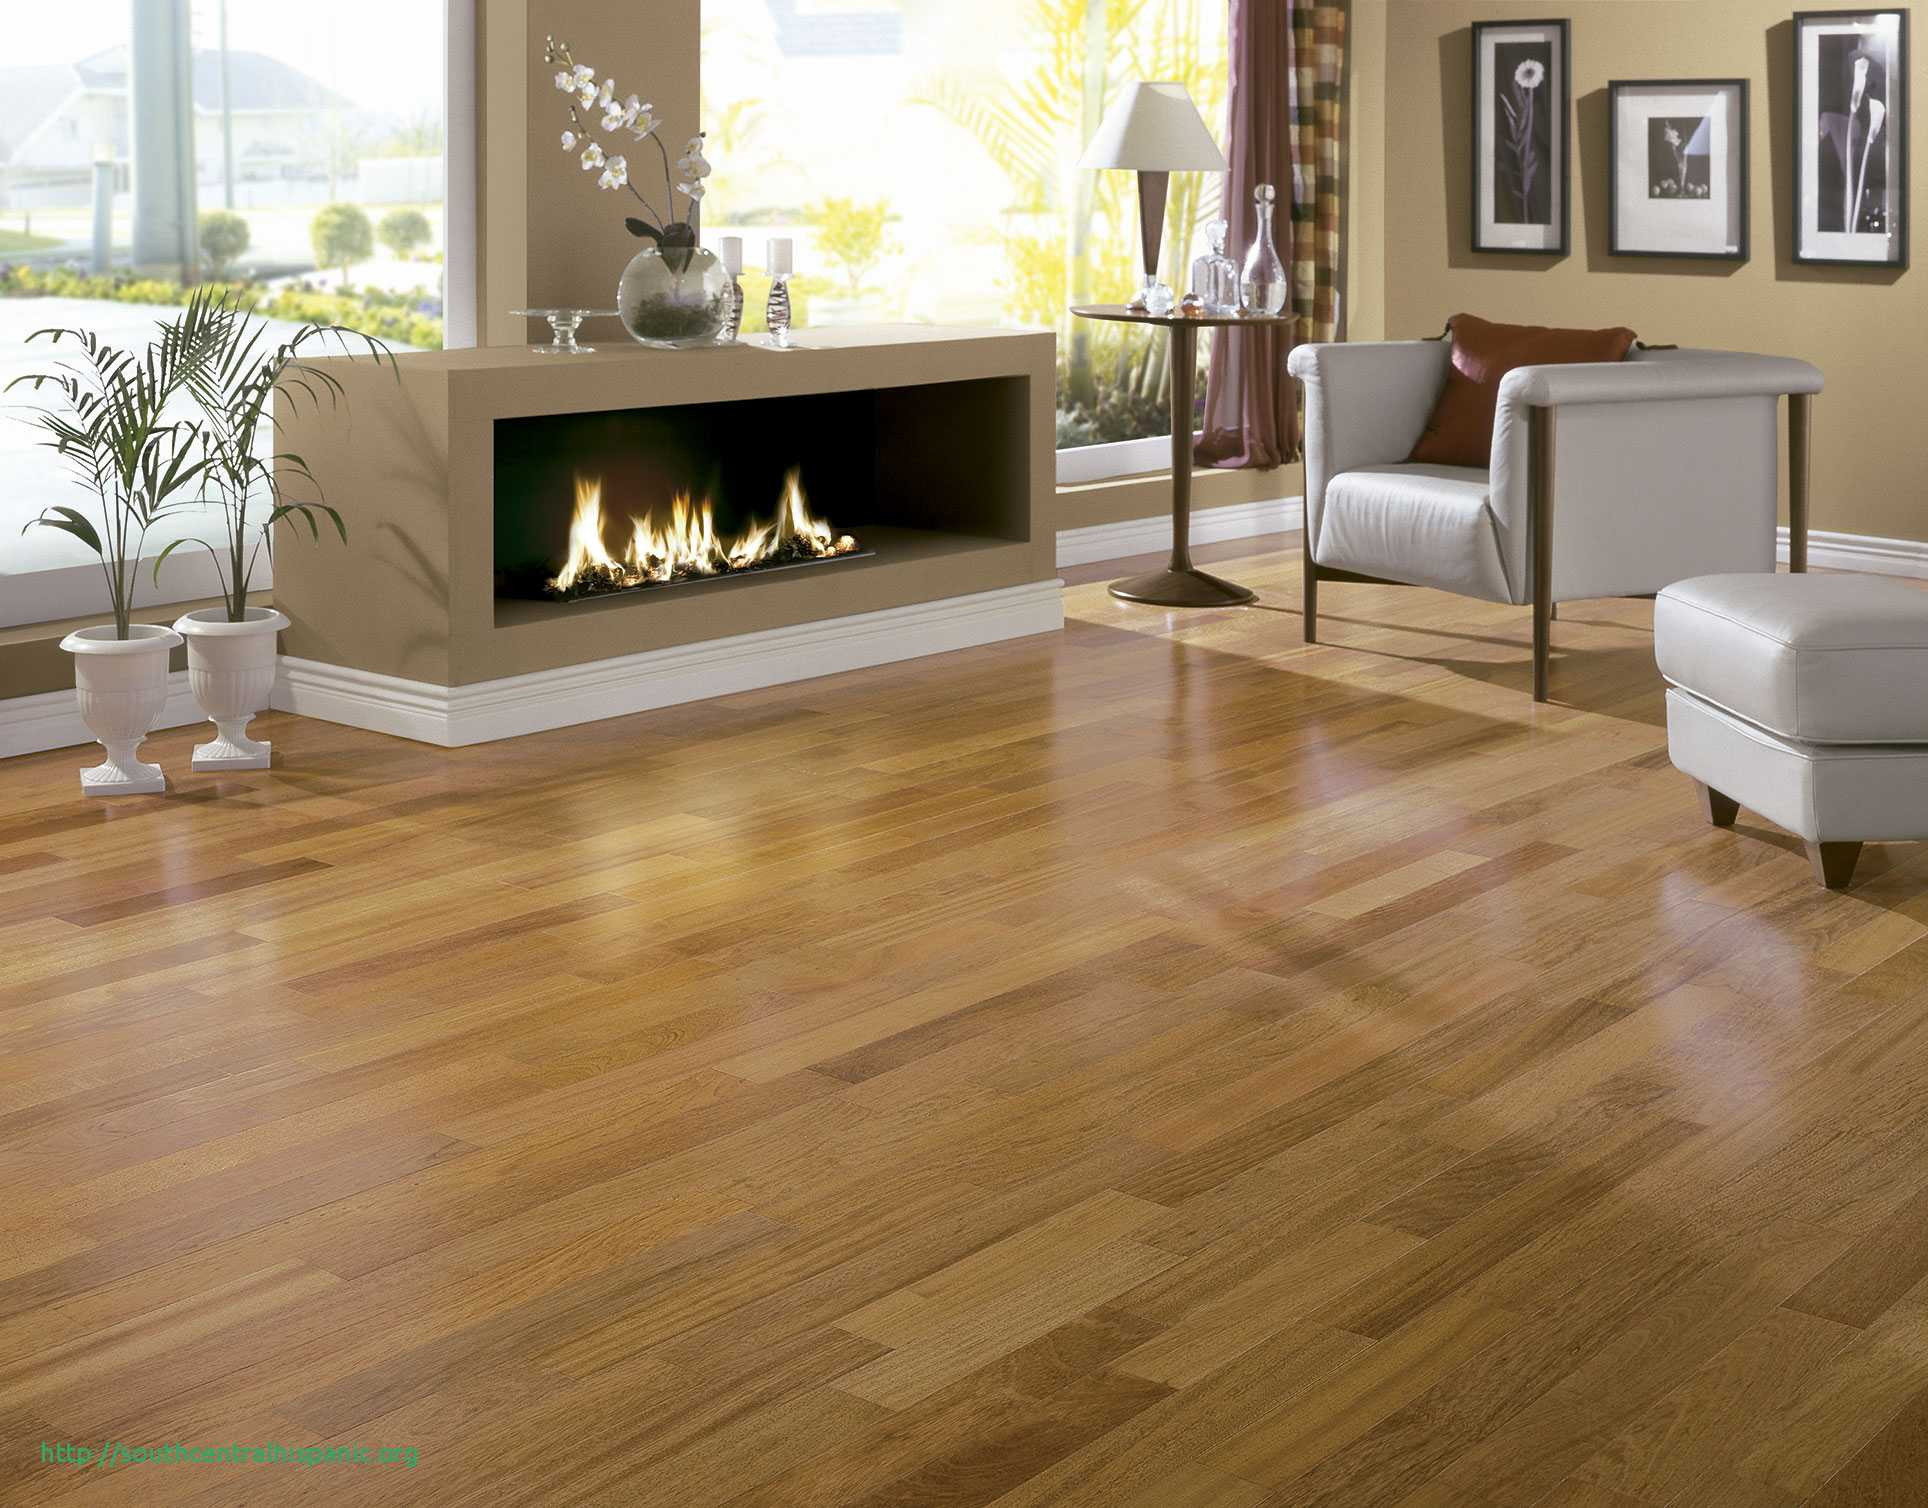 how much does laminate hardwood flooring cost of what are laminate floors inspirant white laminate flooring unique for what are laminate floors meilleur de breathtaking discount hardwood flo